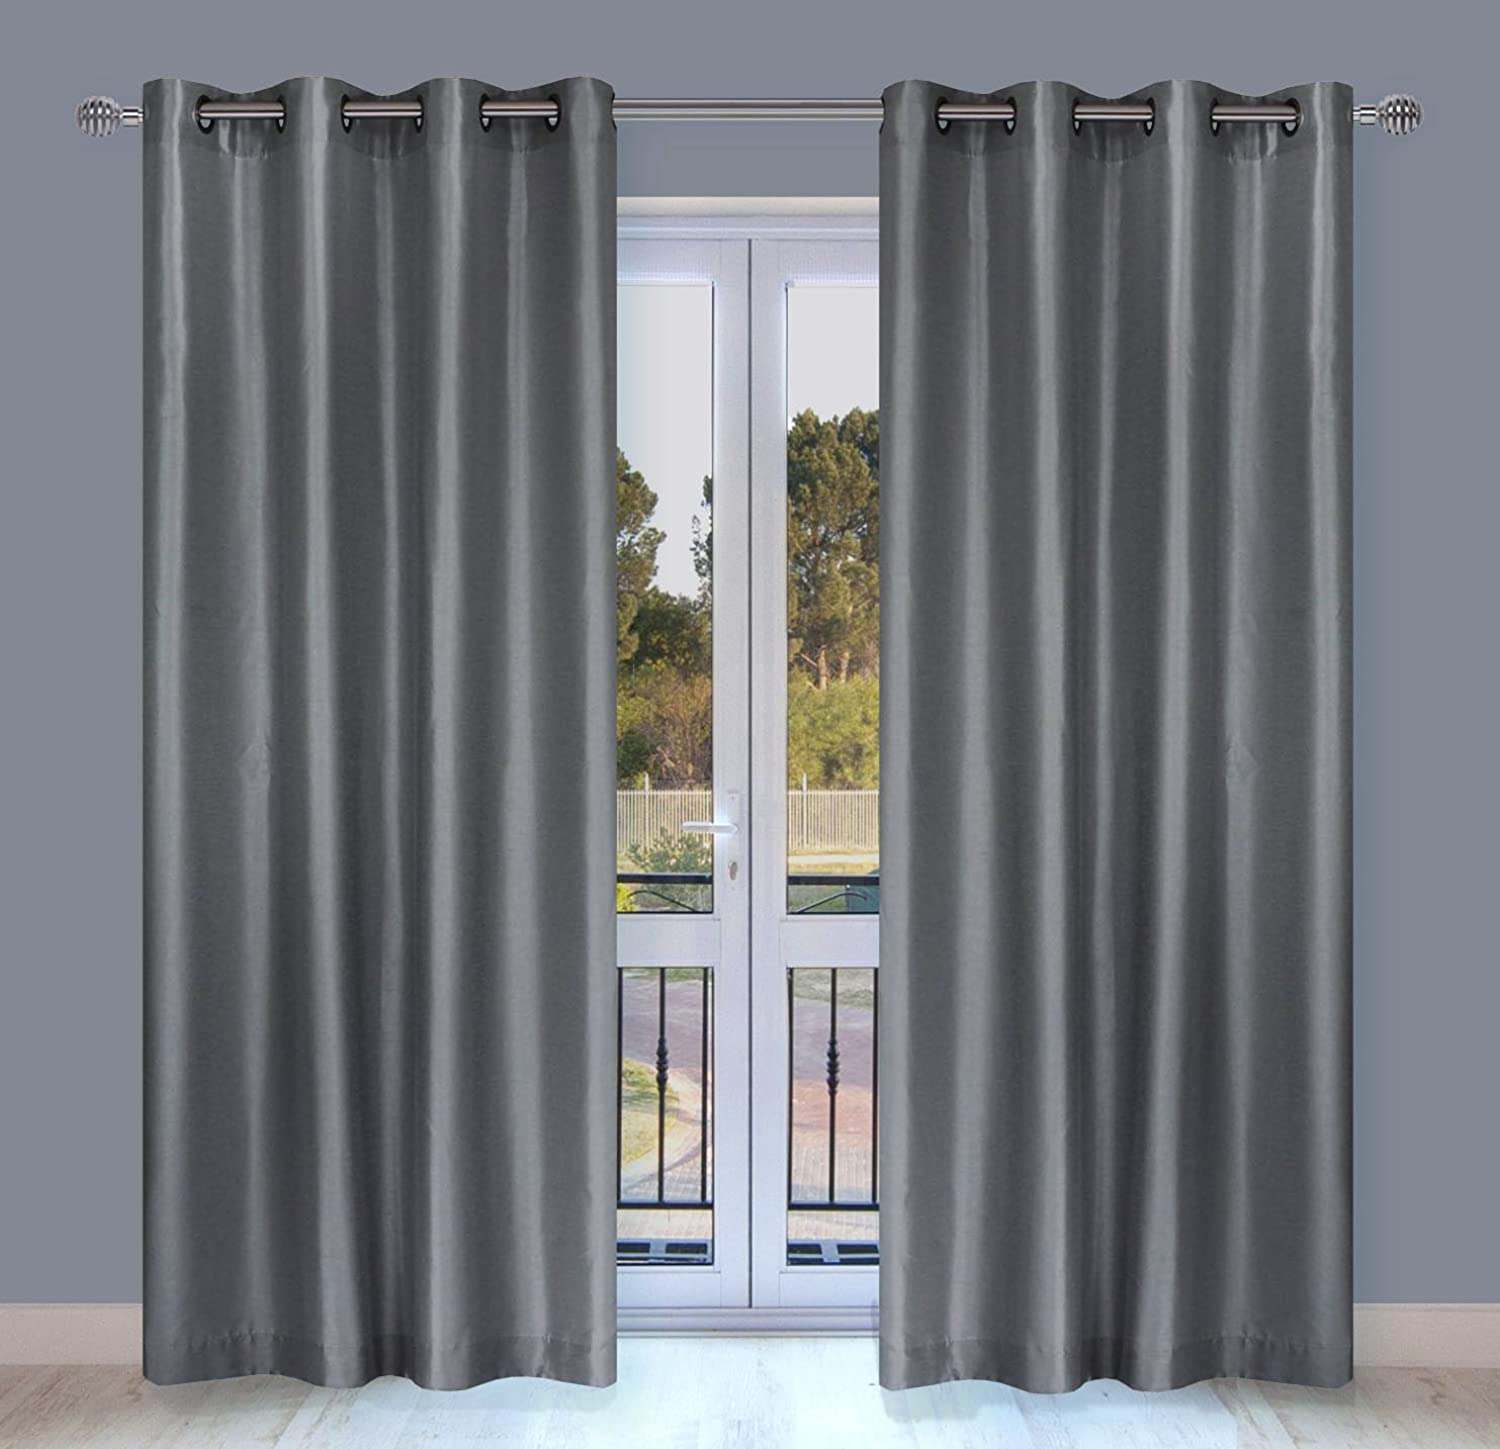 LJ Home Fashions 329 Silkana Faux Silk Grommet Curtain Panels (Set of 2) 56  W x 88  L, Grey